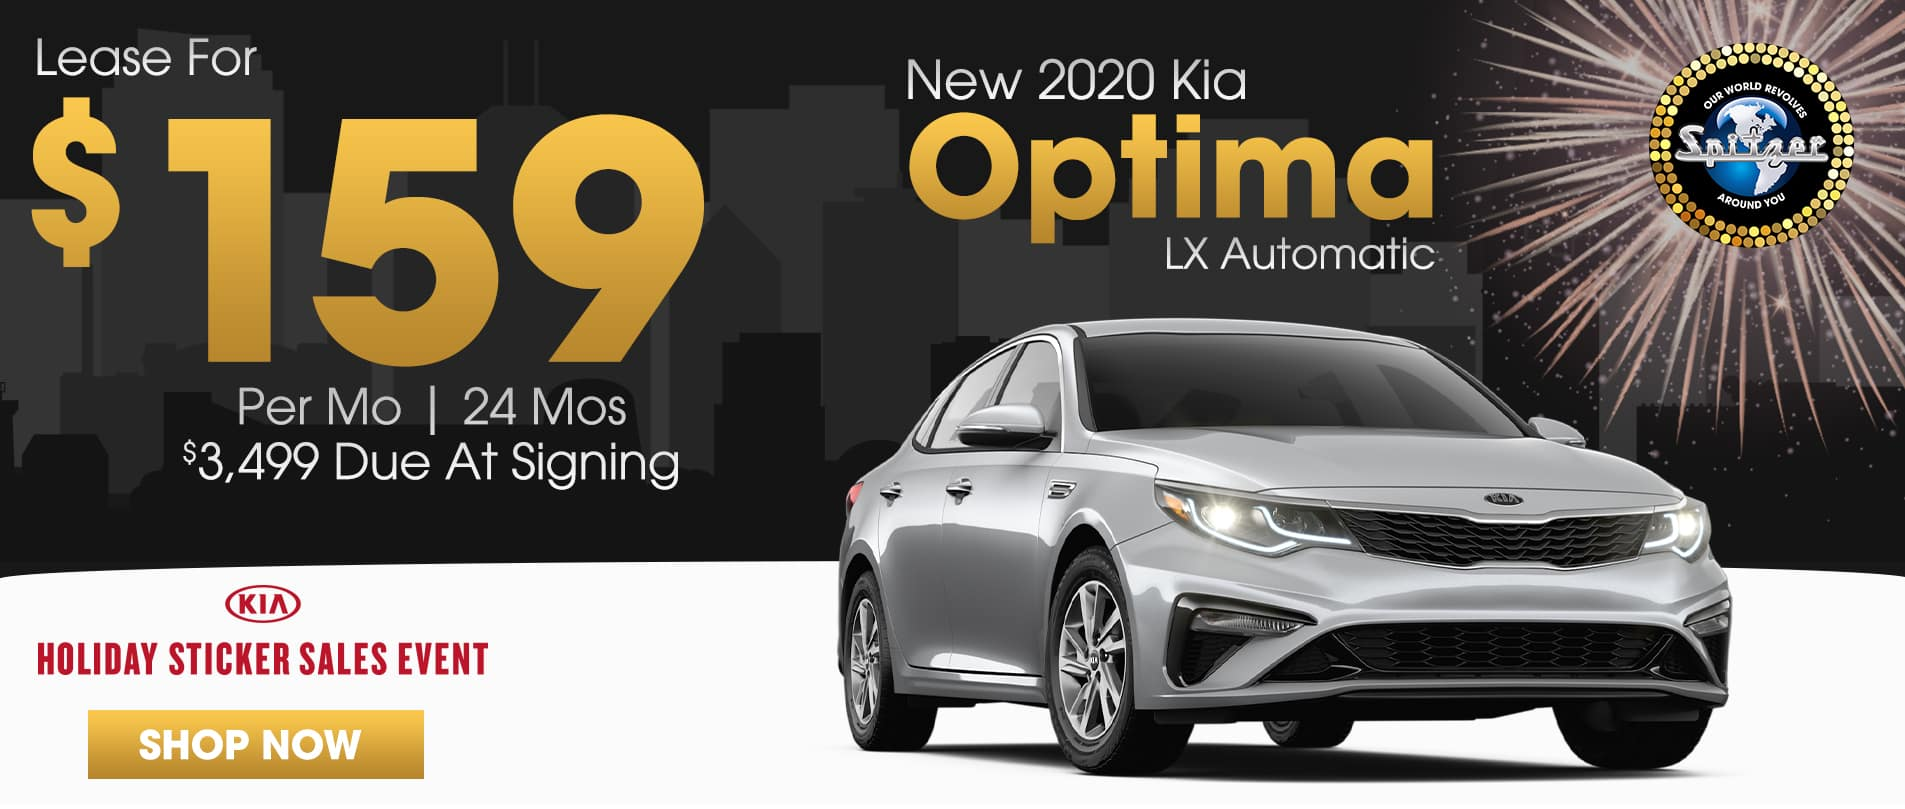 Optima | Lease for $159 per mo